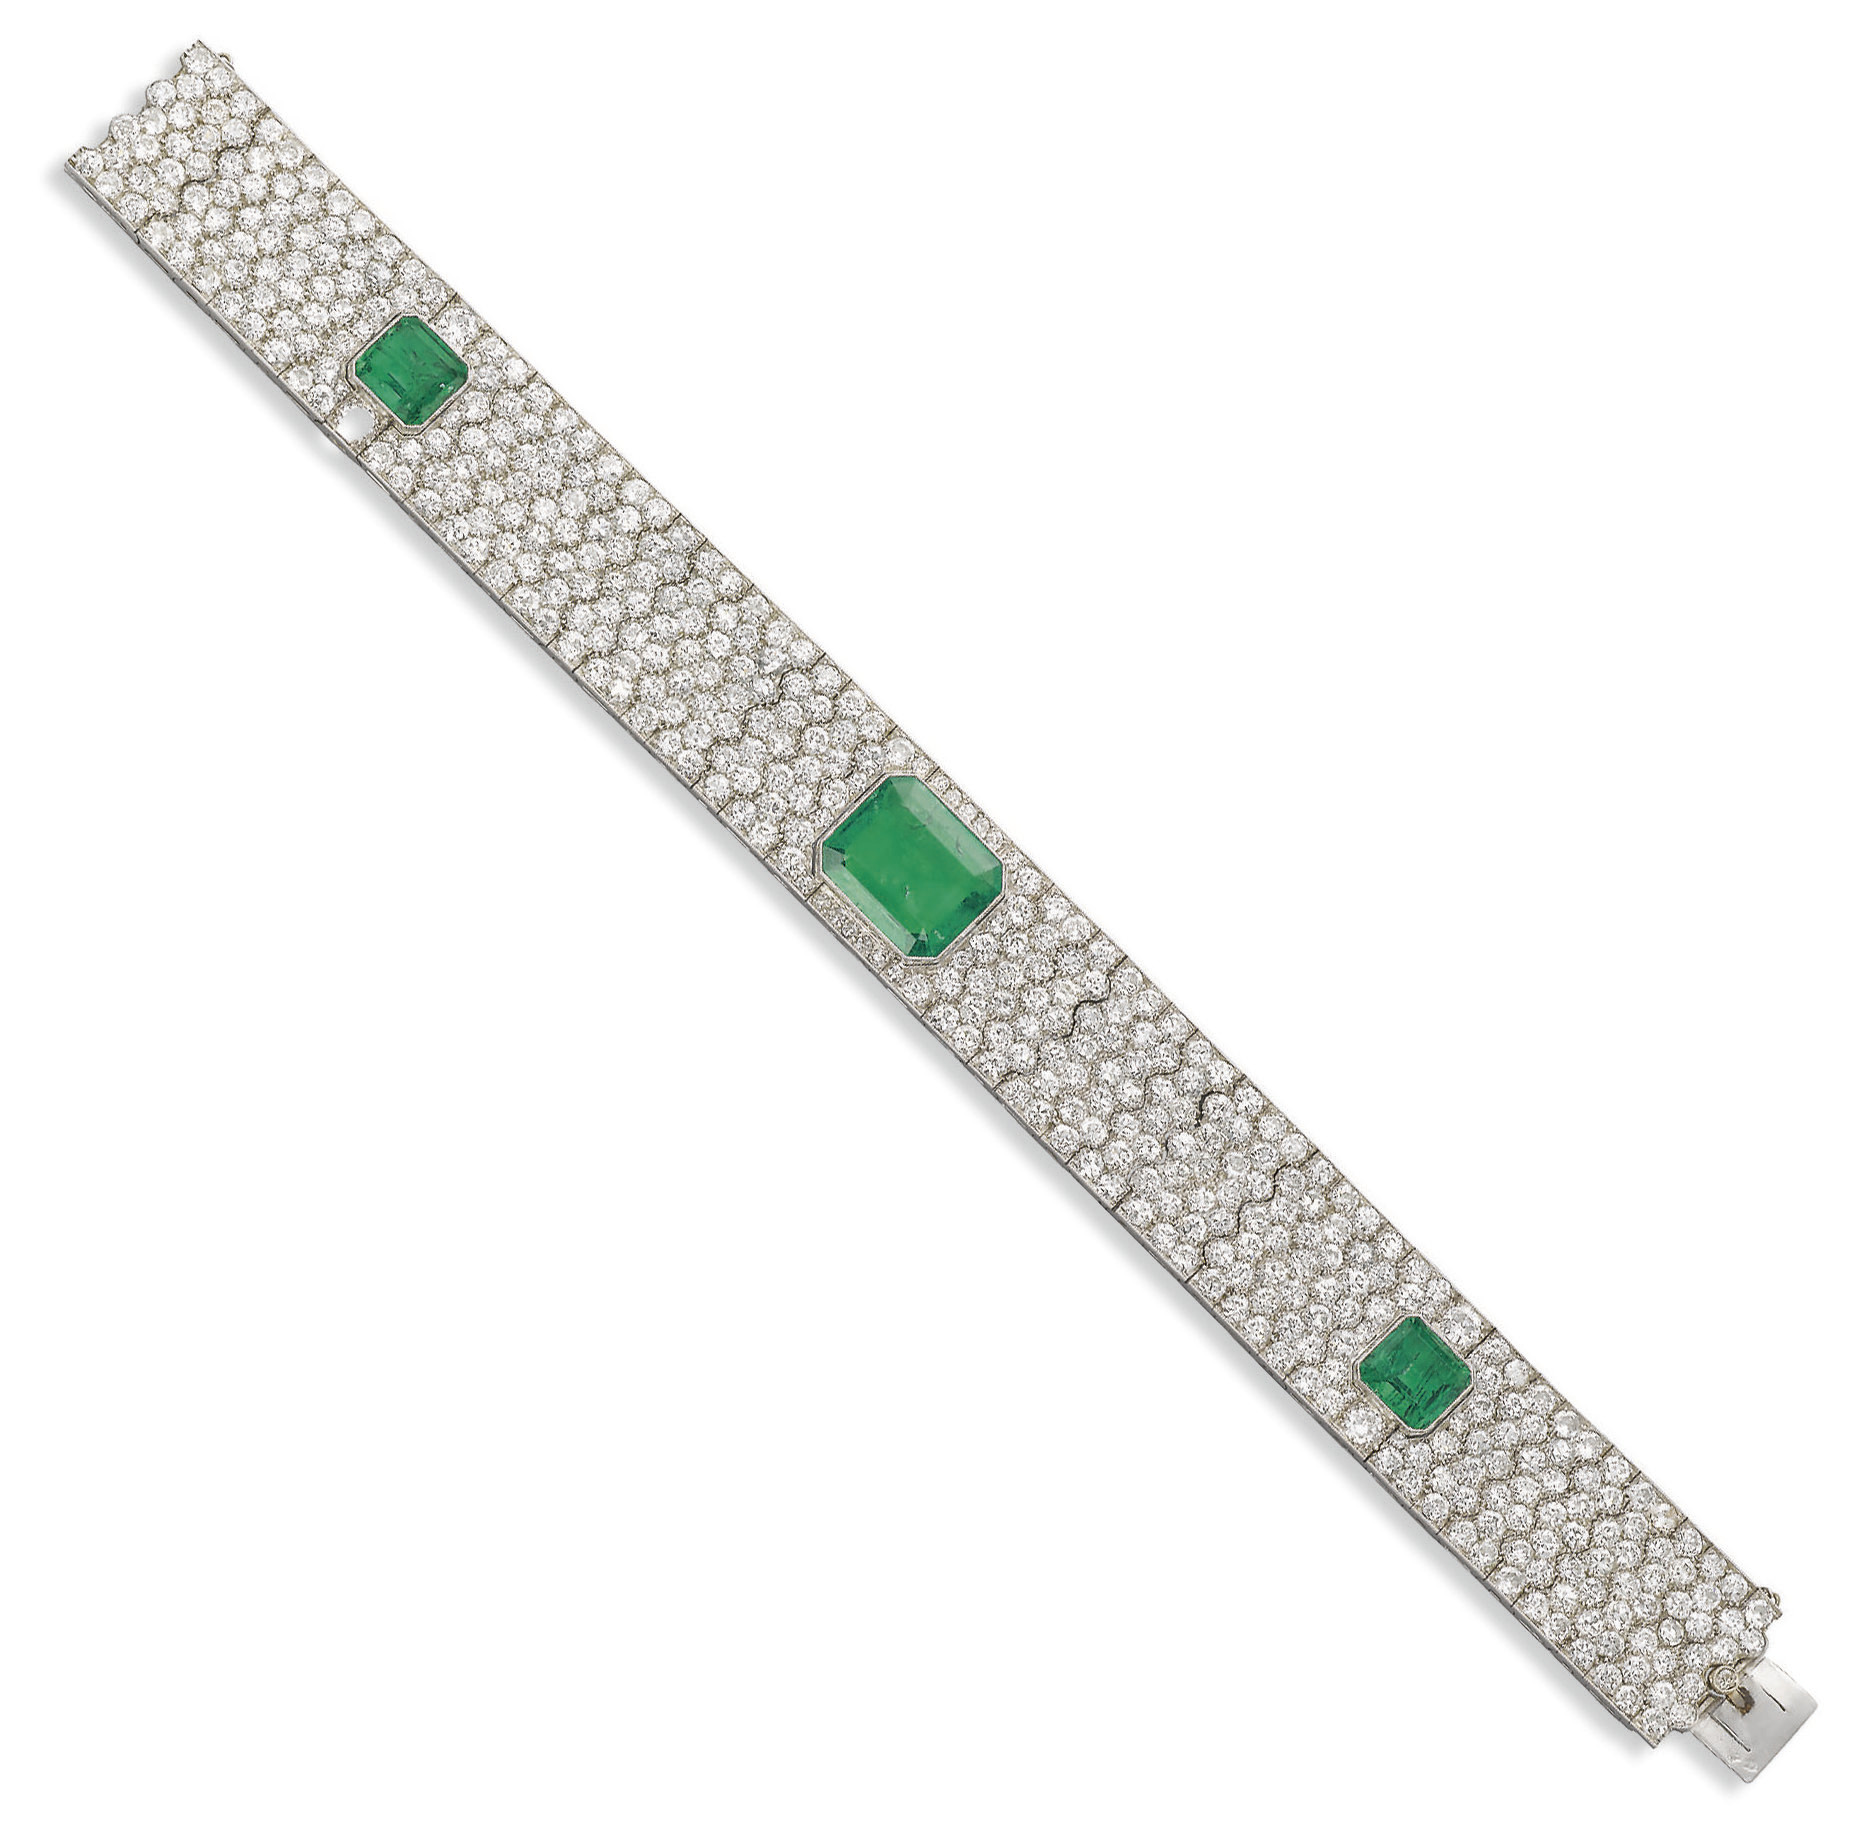 AN ART DECO EMERALD AND DIAMOND BRACELET, BY FONTANA